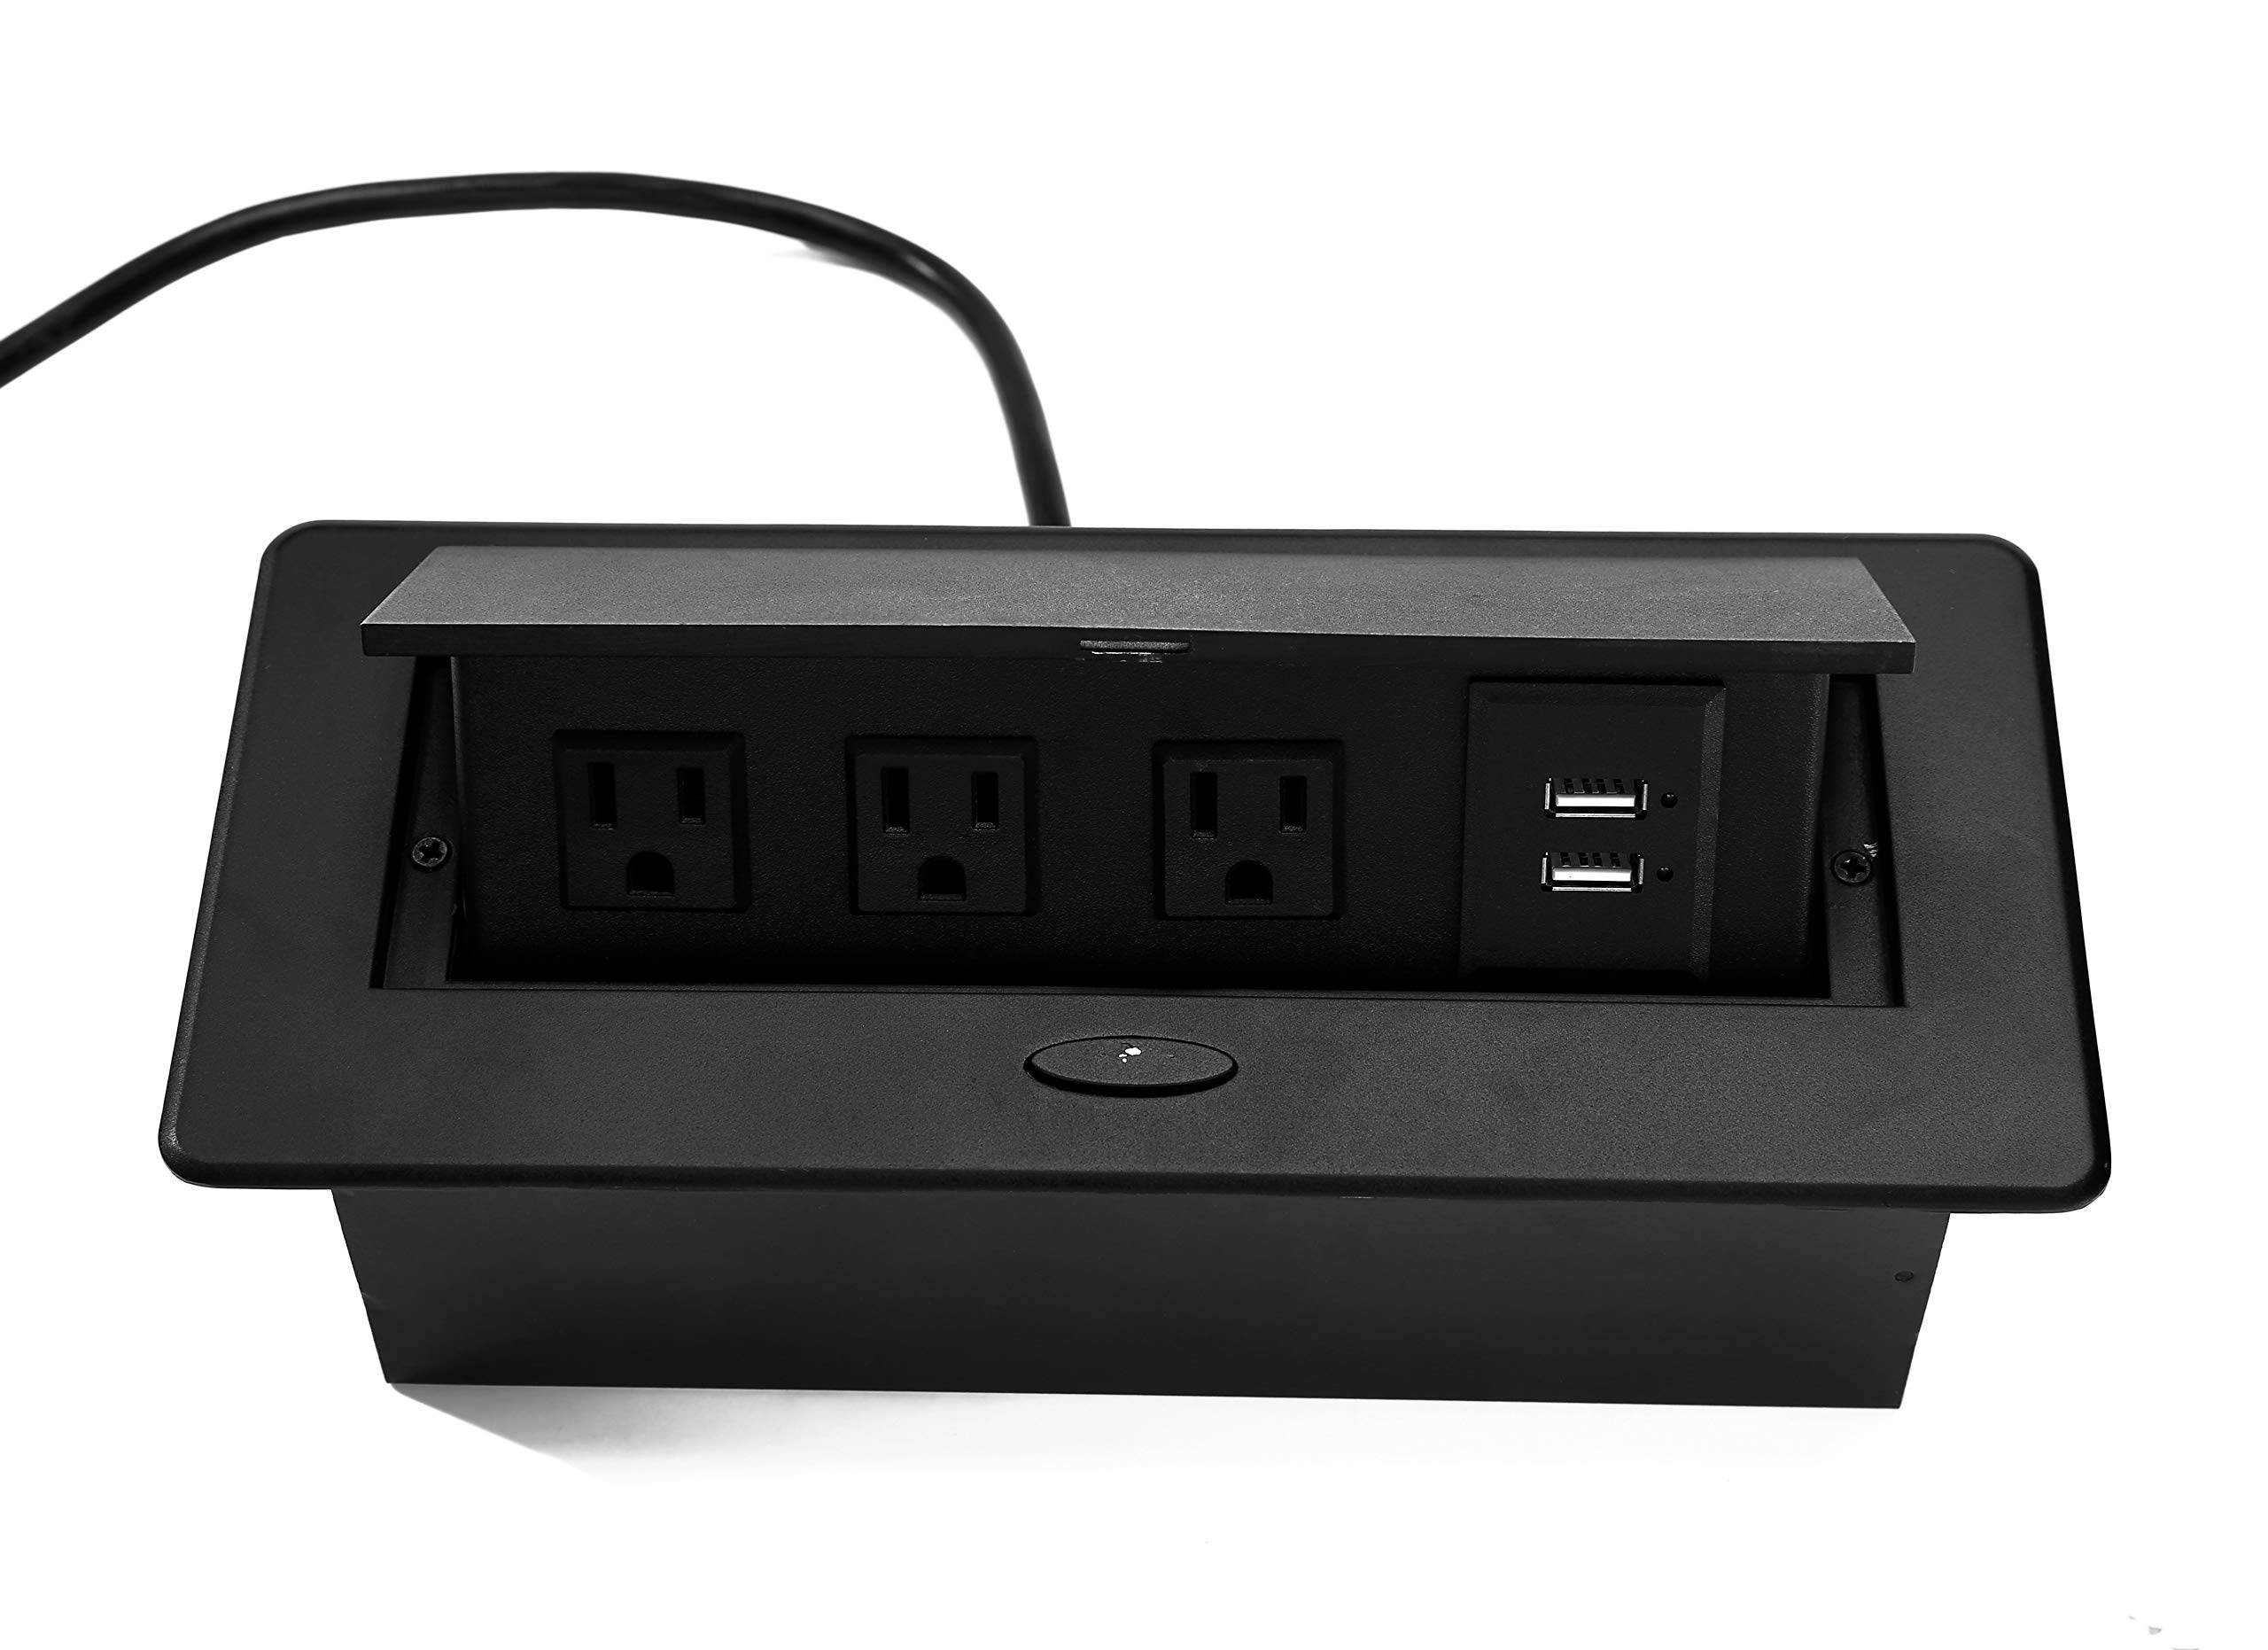 Kungfuking Pop Up Power Cover Box Desktop Socket with Dual USB Charger, Stainless Steel Receptacle Outlet for Conference Room Countertop (Black)